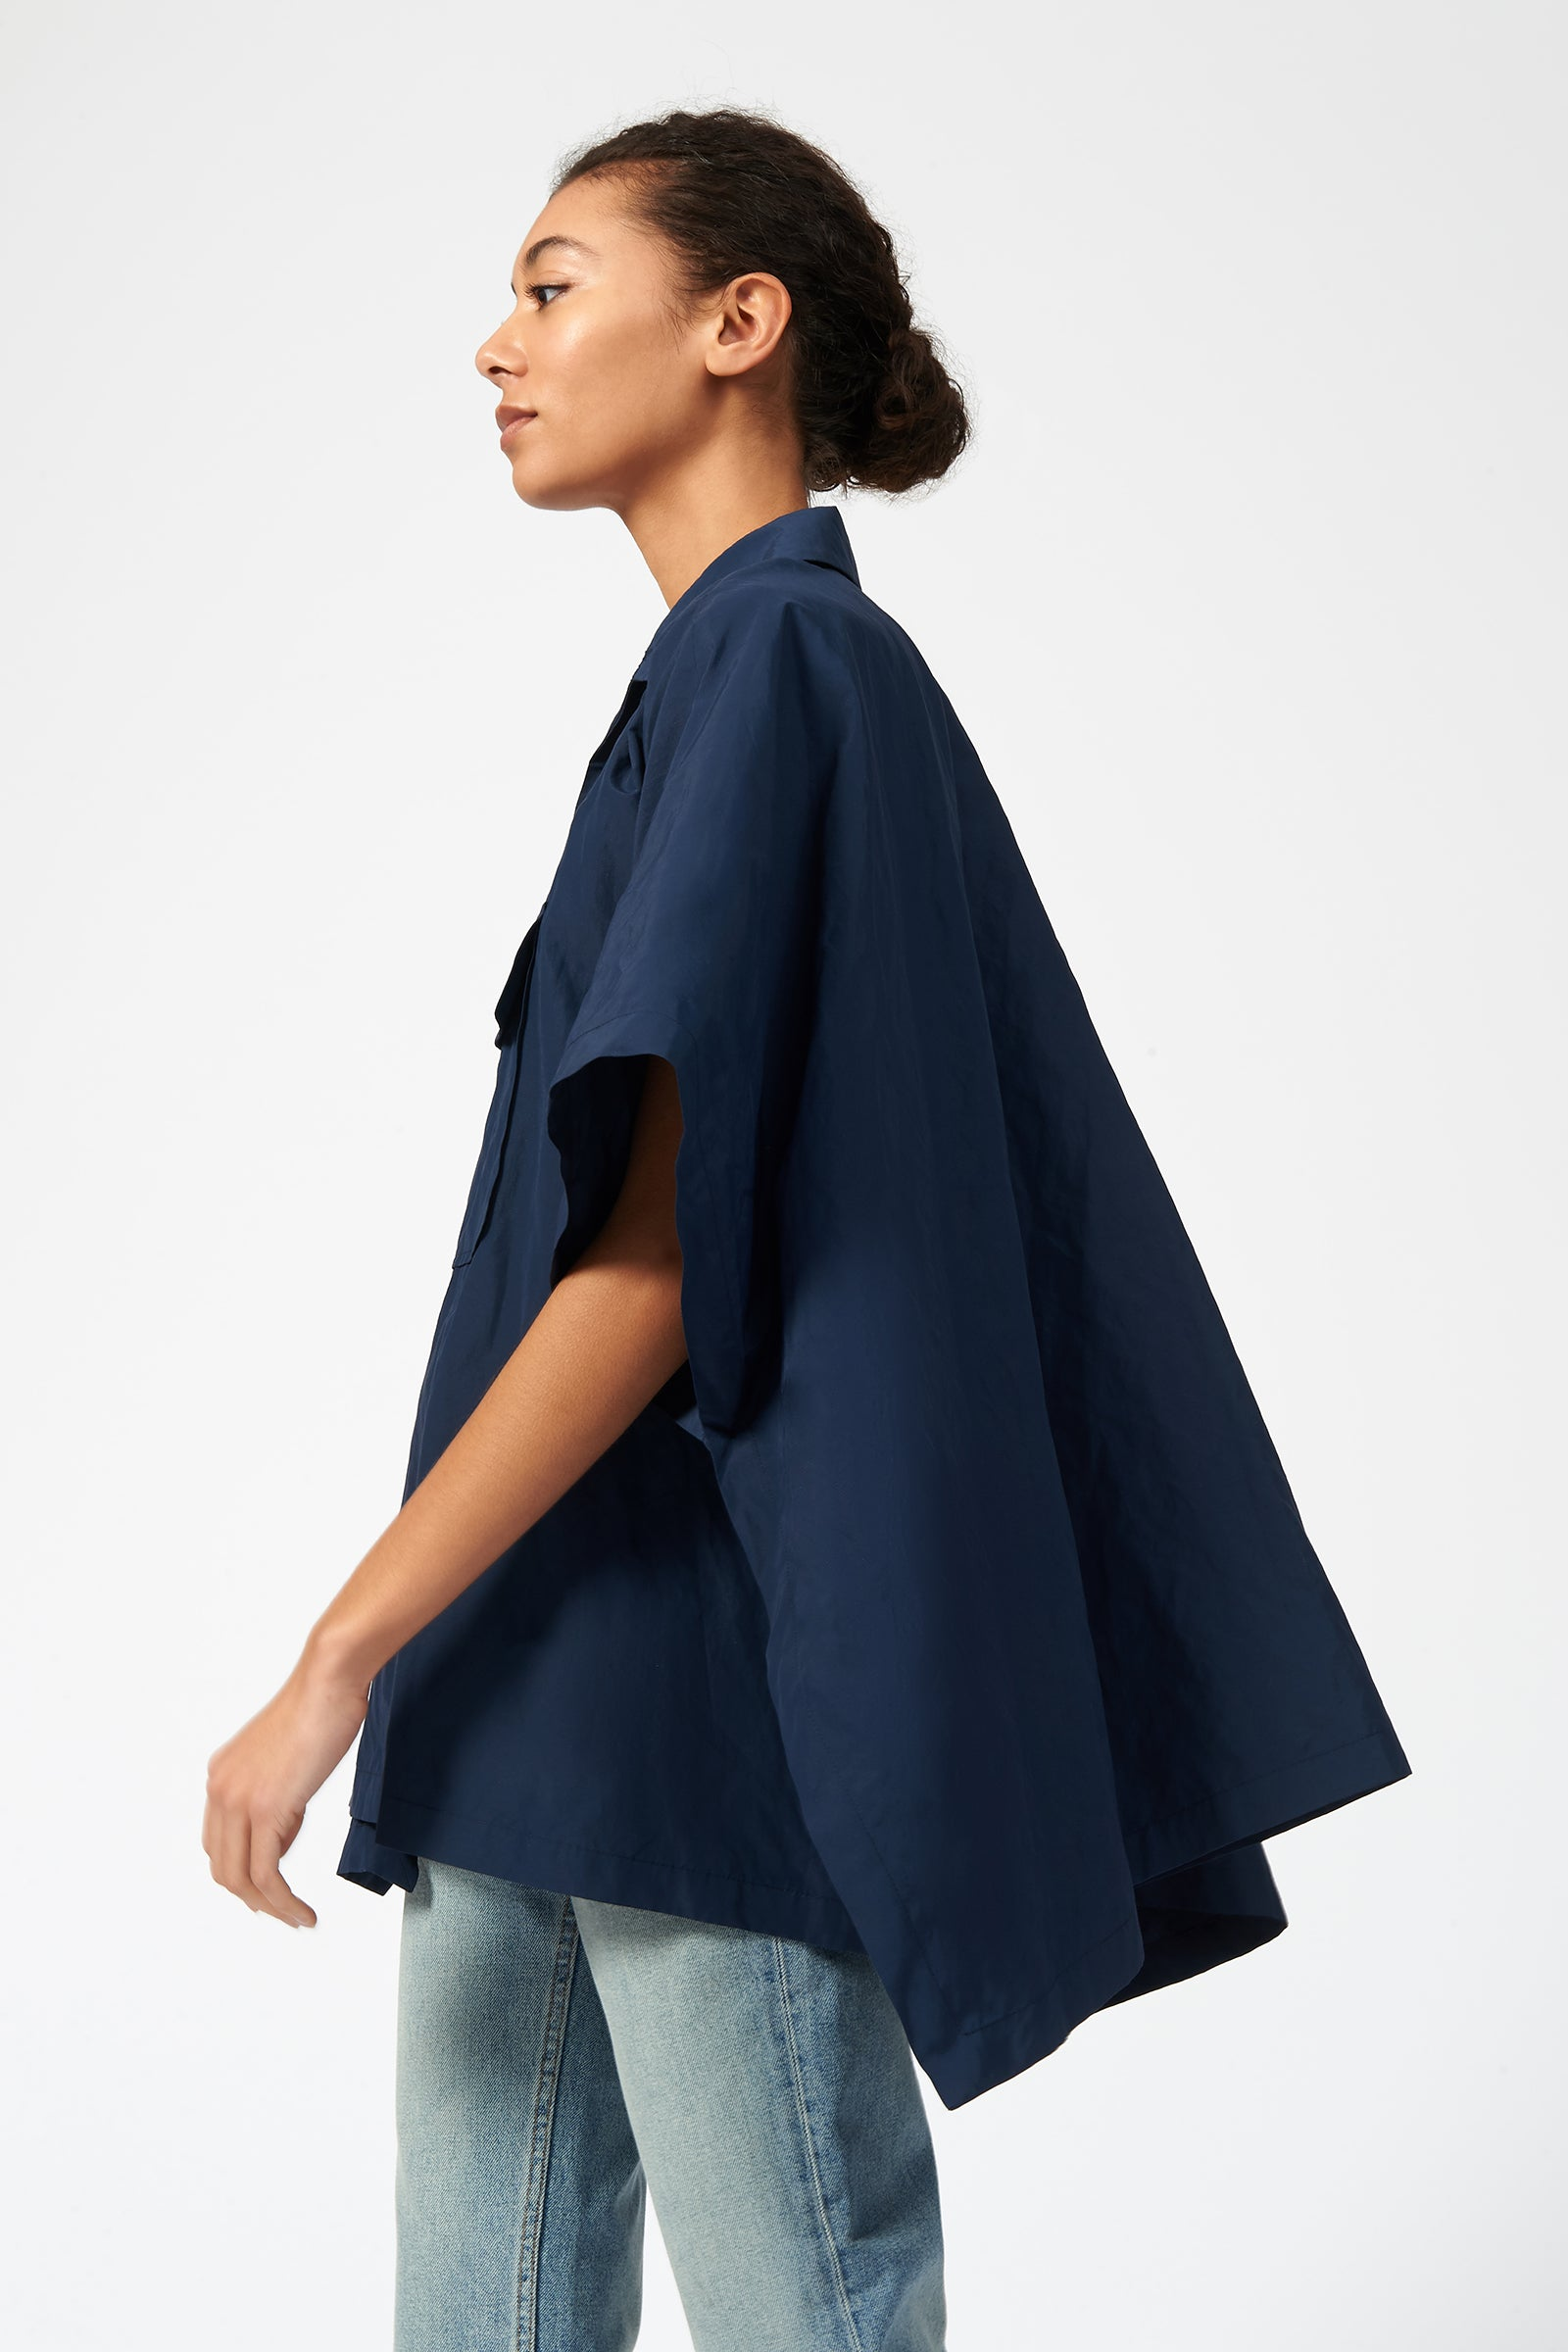 Kal Rieman Cotton Nylon Anorak in Navy on Model Side View